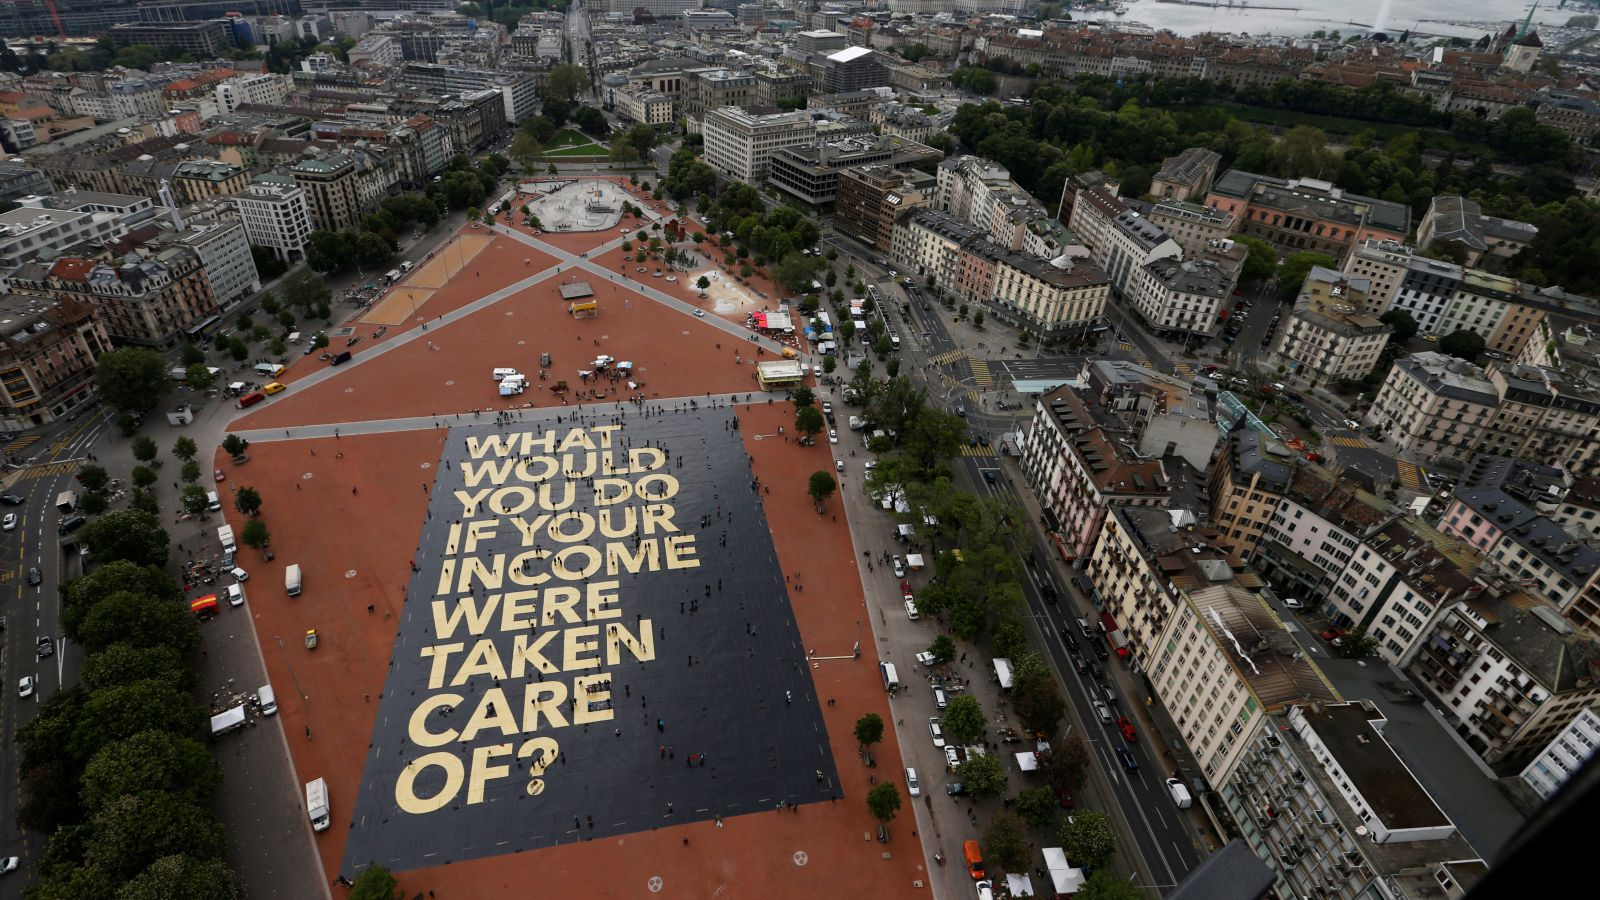 The question of universal basic income looms large. ||Denis Balibouse, Reuters.